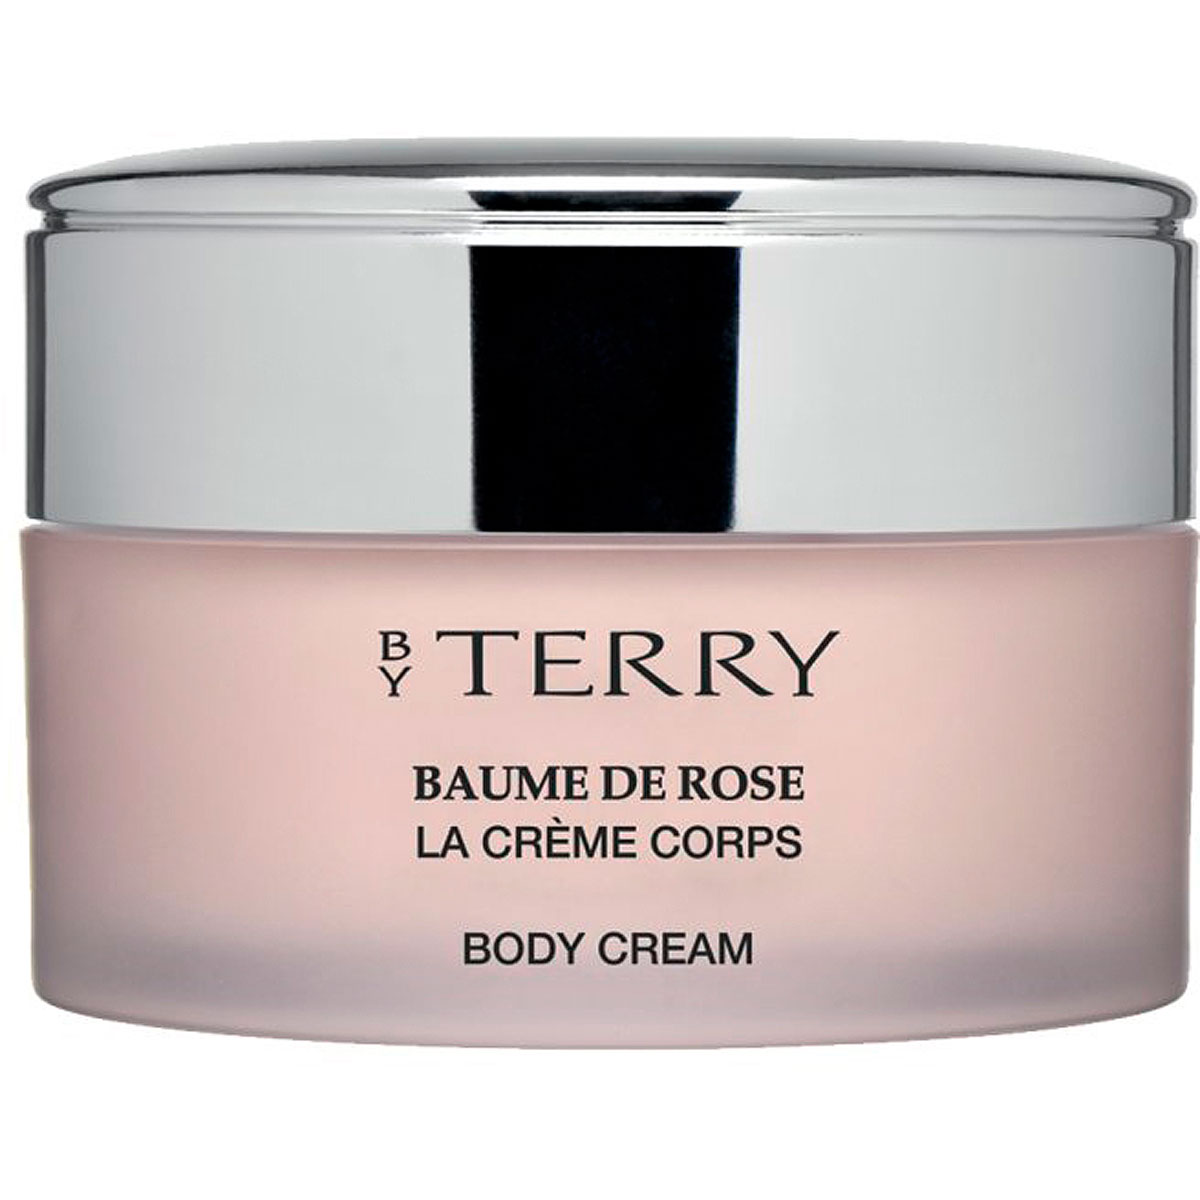 By Terry Beauty for Women On Sale, Baume De Rose - Body Cream - 200 Ml, 2019, 200 ml